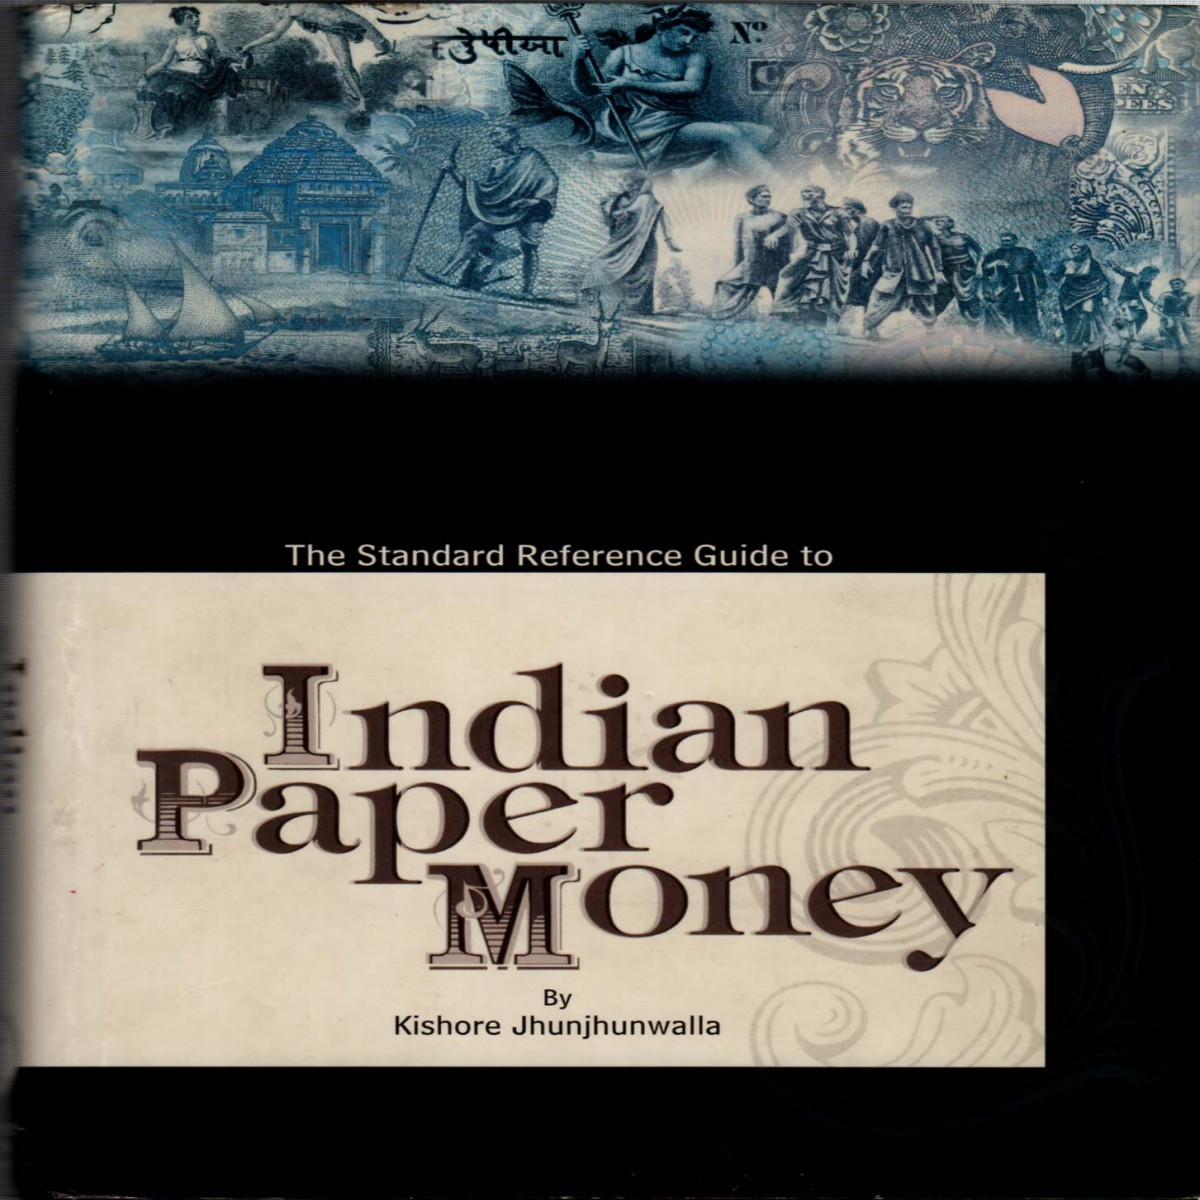 The Standard Reference Guide to Indian Paper Money